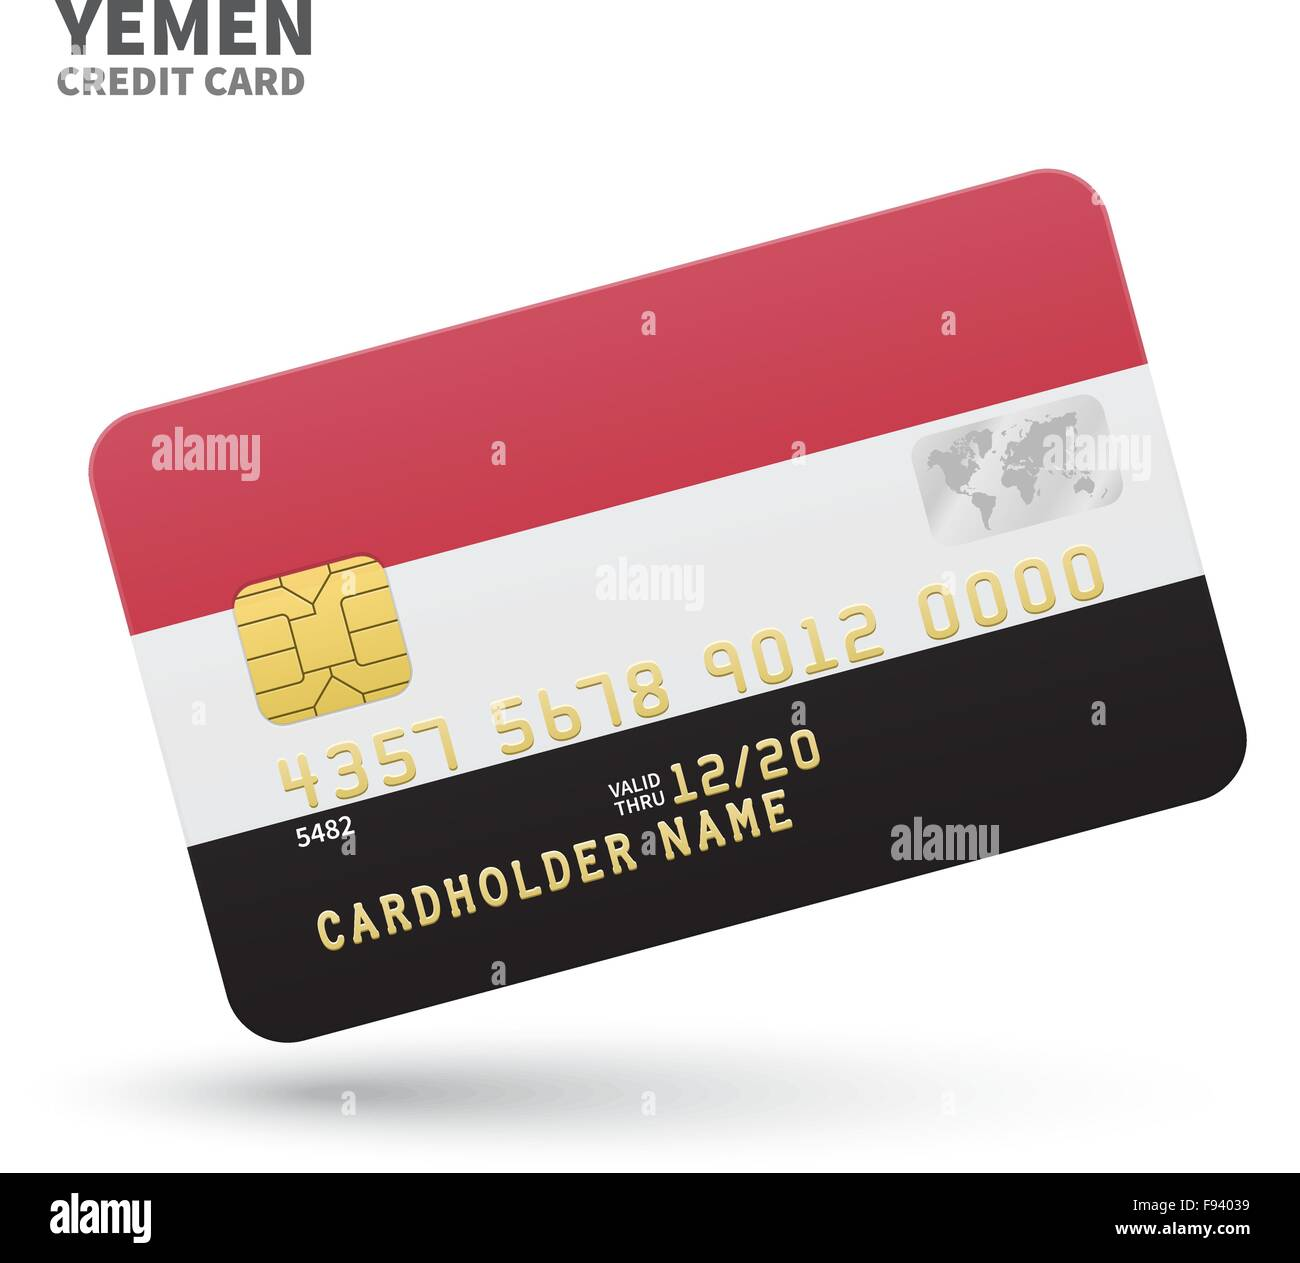 Credit card with Yemen flag background for bank, presentations and business. Isolated on white - Stock Vector